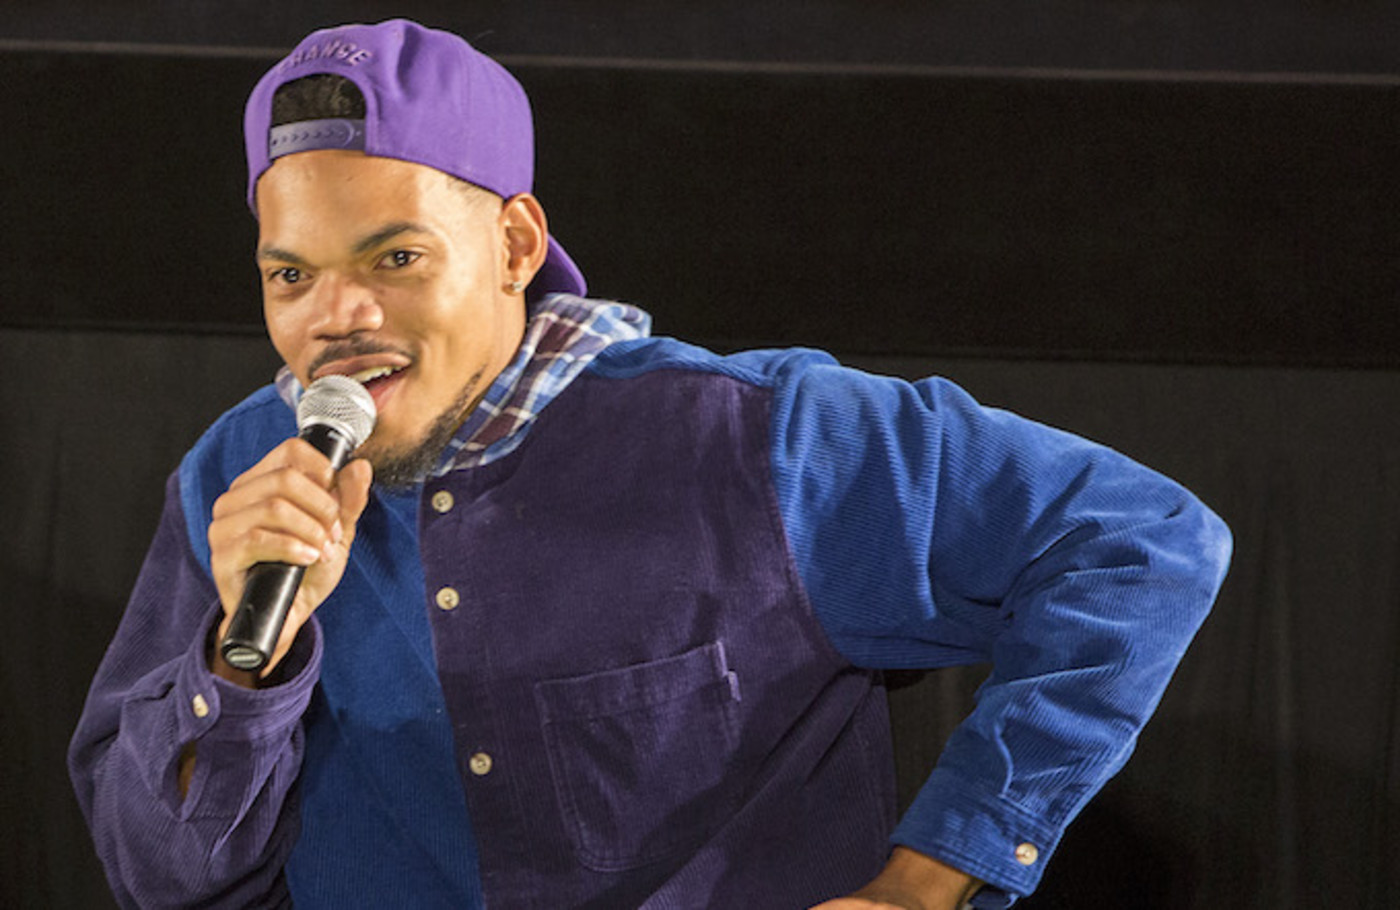 Chance the Rapper announcement